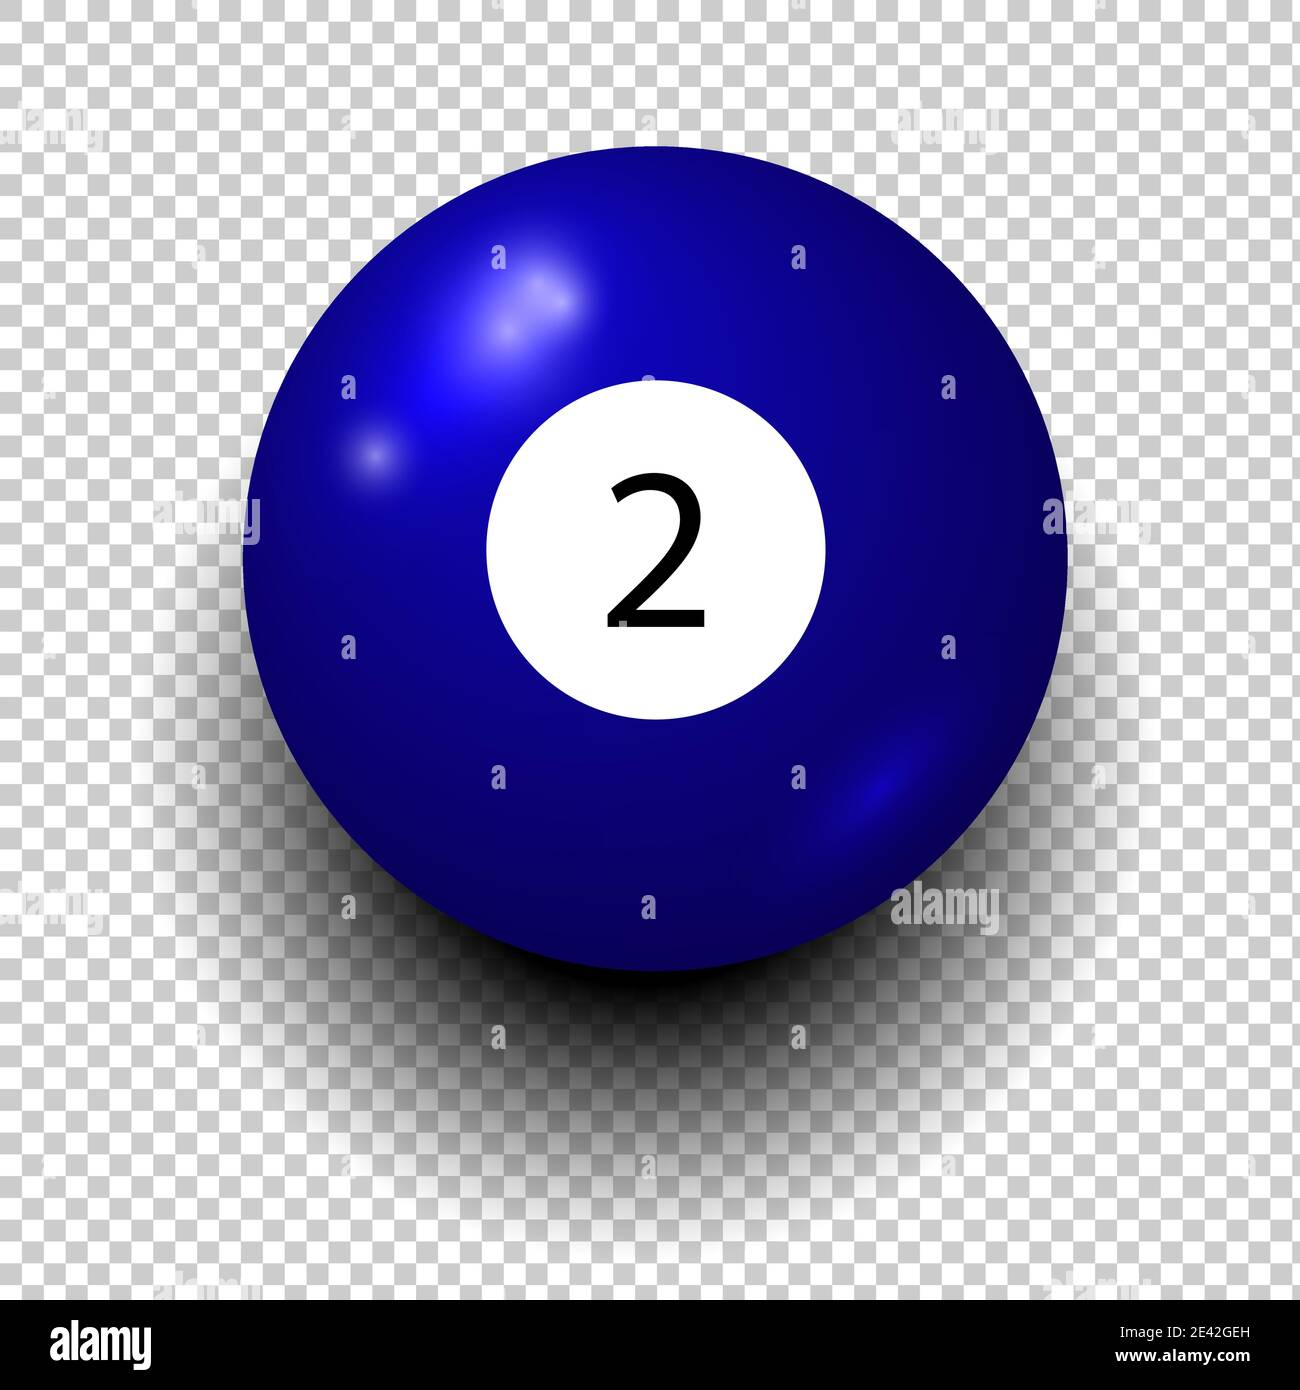 Billiard Blue Pool Ball Number 2 Snooker High Resolution Stock Photography And Images Alamy